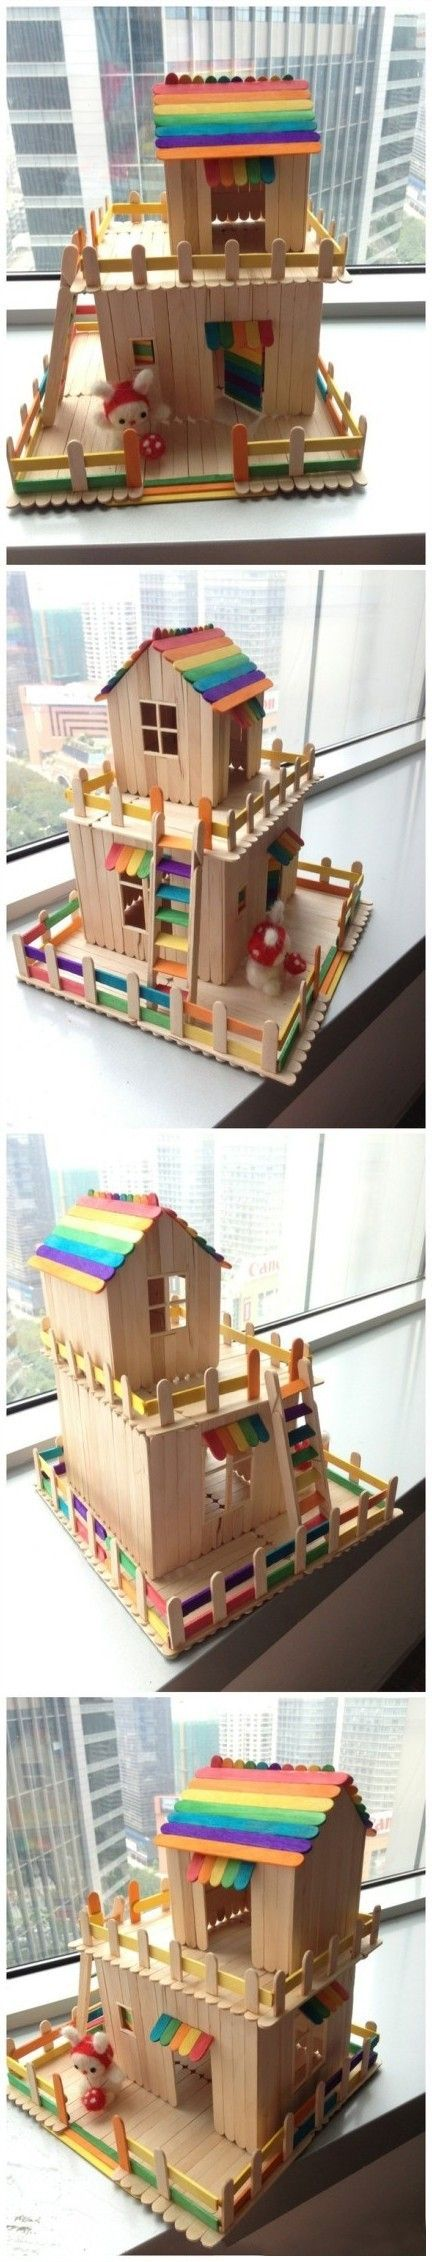 best 25+ popsicle stick houses ideas on pinterest | popsicle